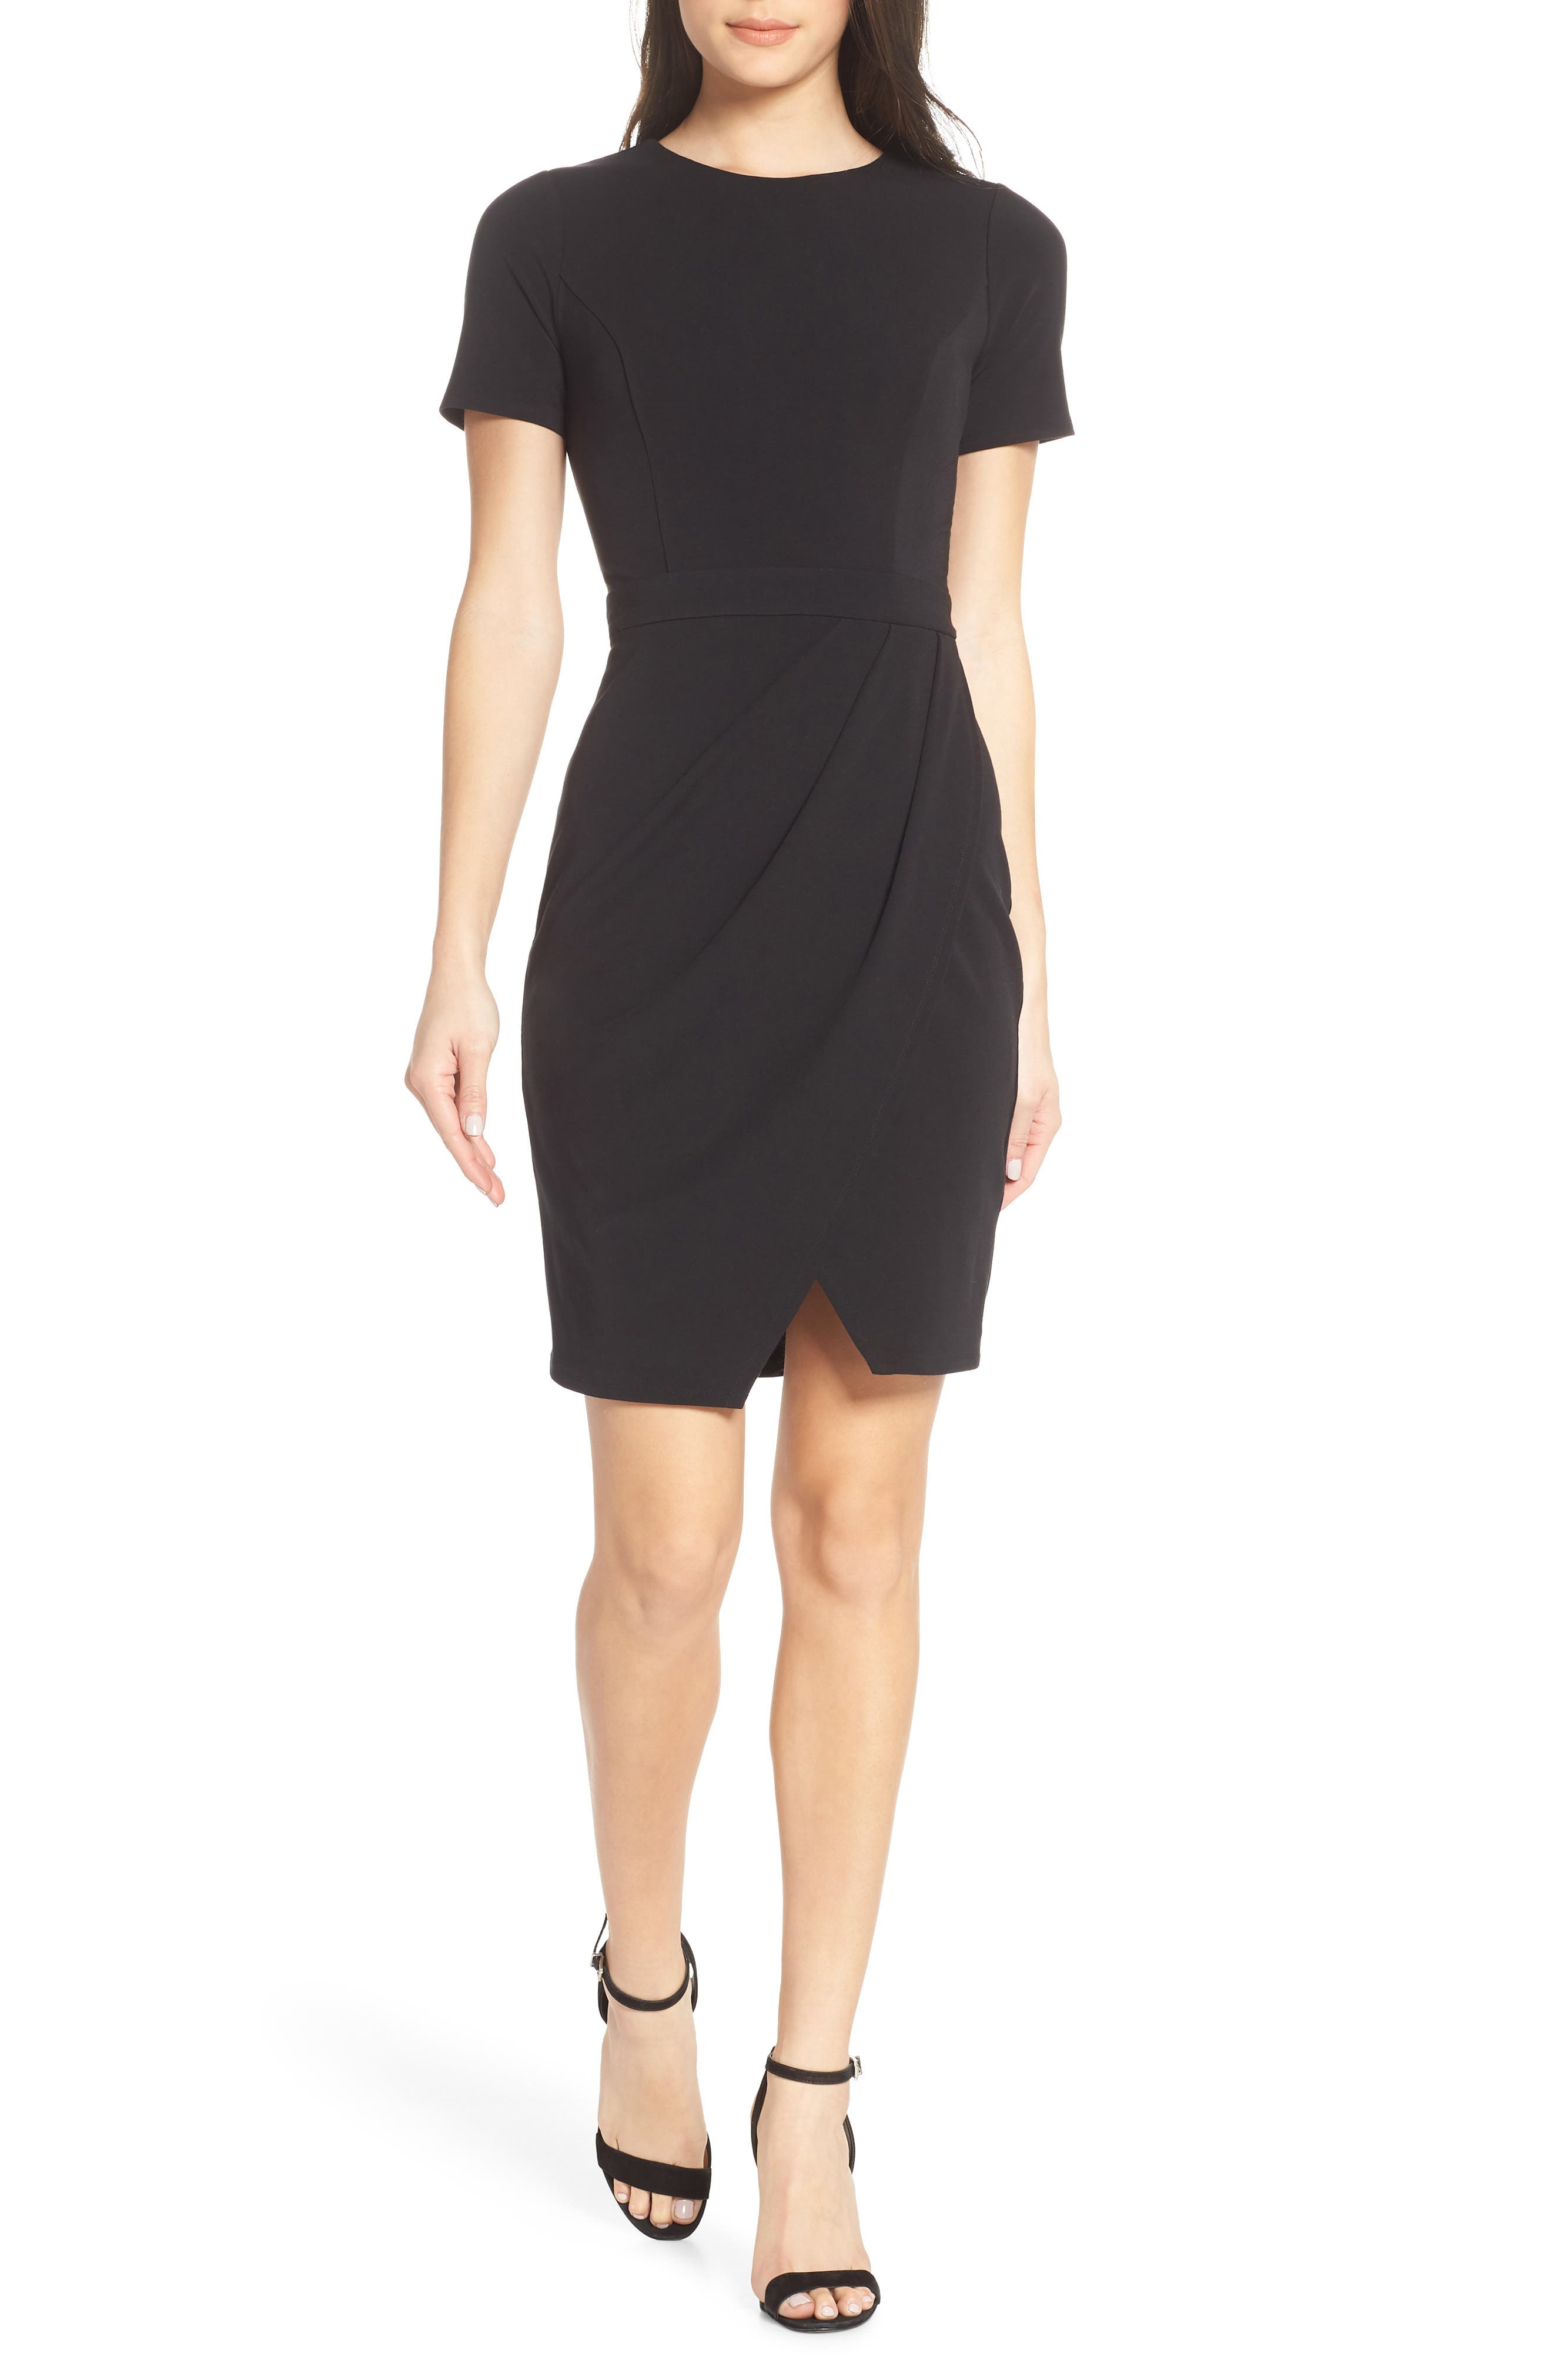 ALI & JAY, Pleated Jersey Dress, Main thumbnail 1, color, BLACK